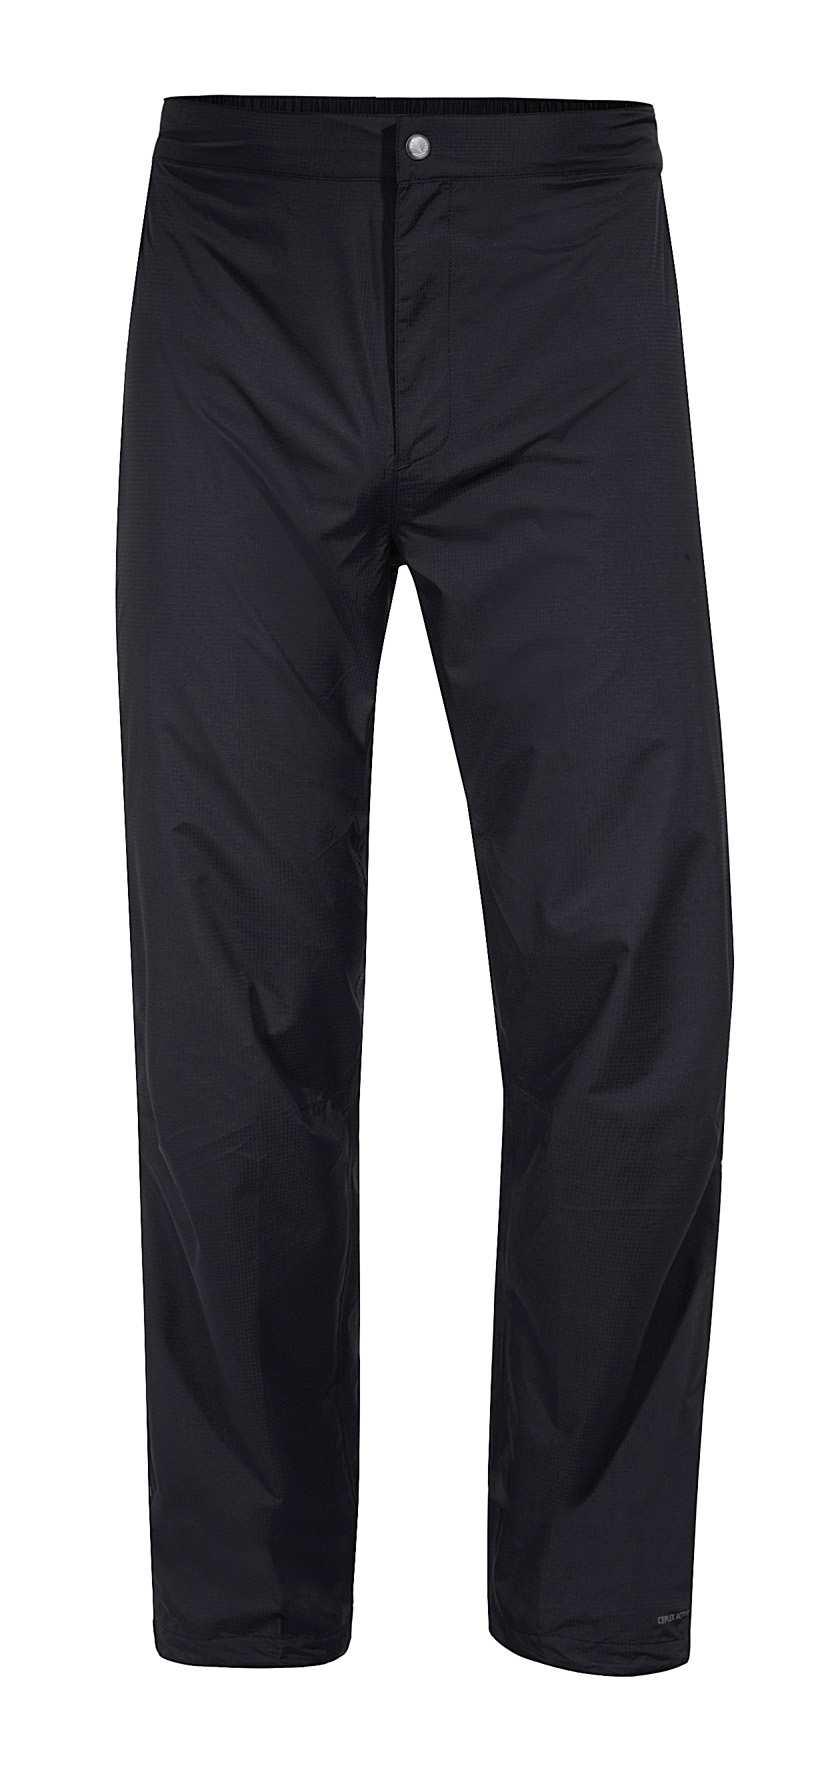 VAUDE Men´s Yaras Rain Pants black Größe L - schneider-sports